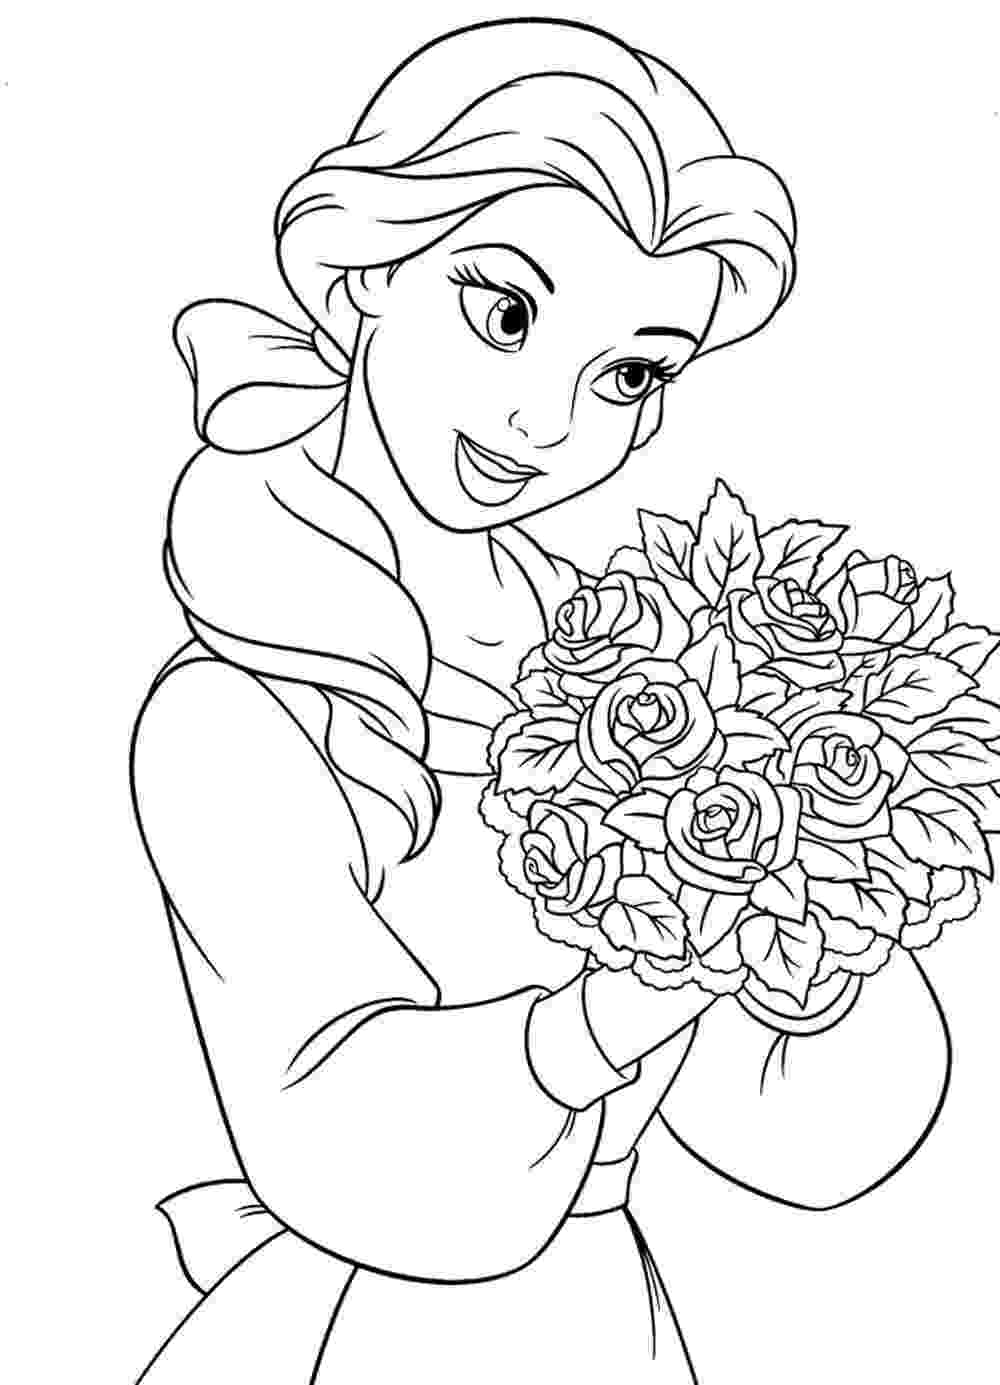 colouring pages to print for girls princess coloring pages for girls free large images for print colouring pages girls to